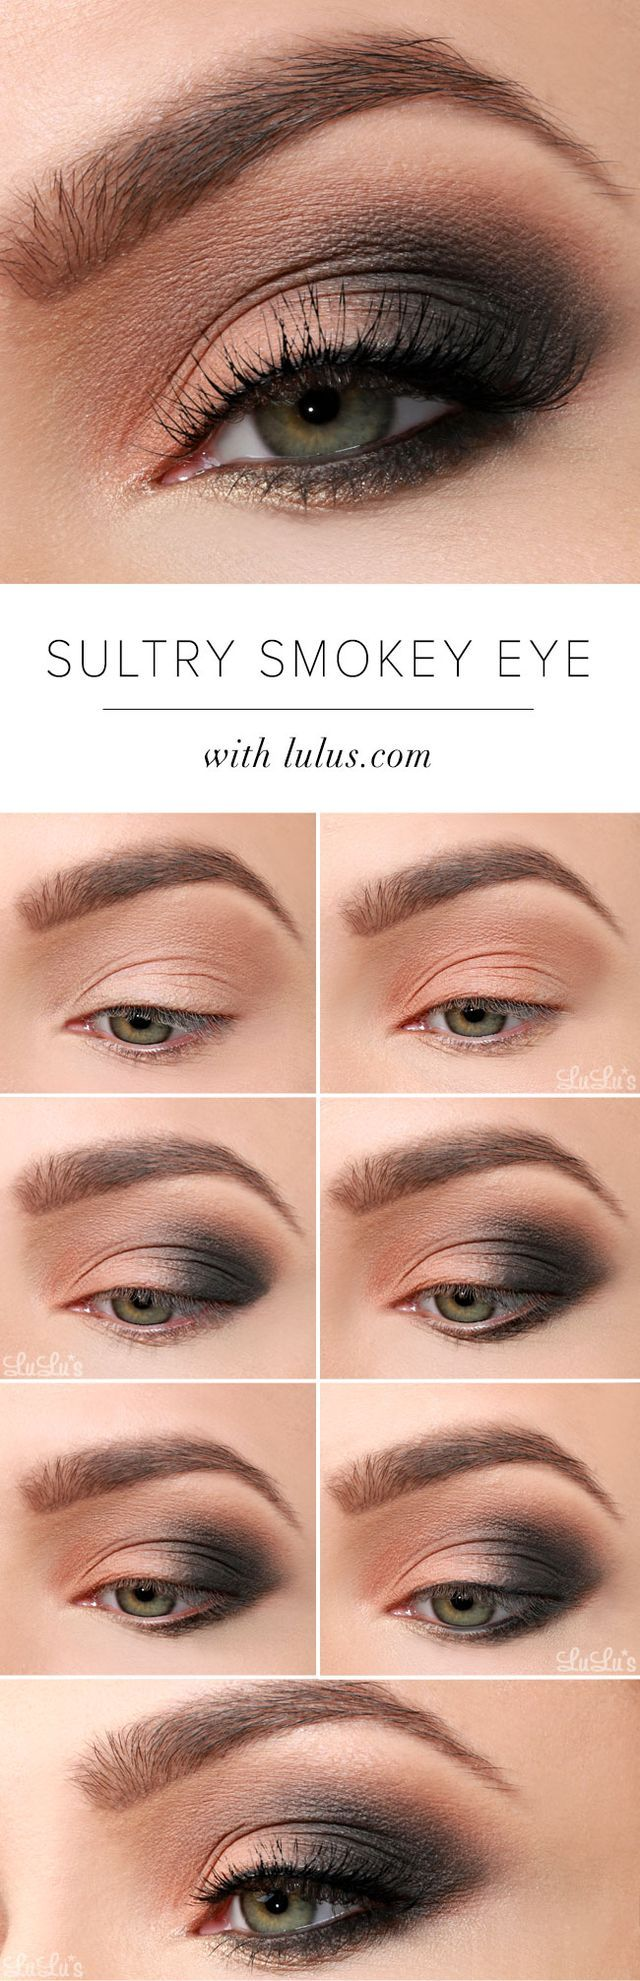 Looking to up your smokey eye game? For your next special occasion or night on the town, be sure to give our Sultry Smokey Eye Makeup Tutorial a whirl! With a touch of shimmering gold paired with blen